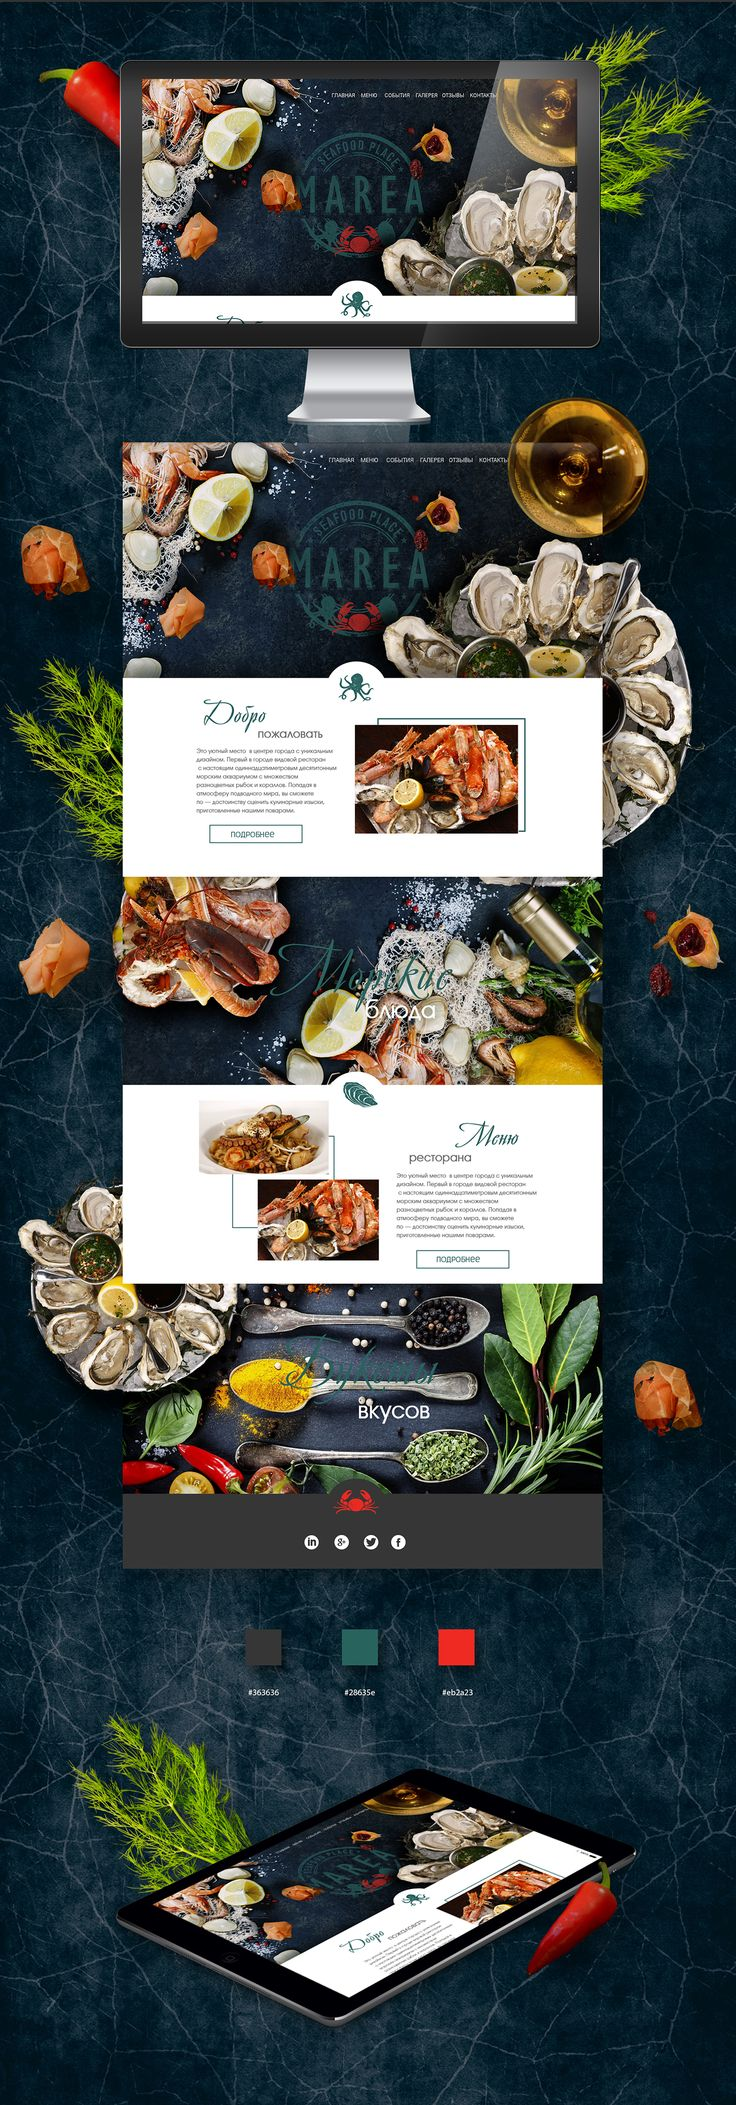 Website design restaurant(Дизайн сайта ресторана) on Behance